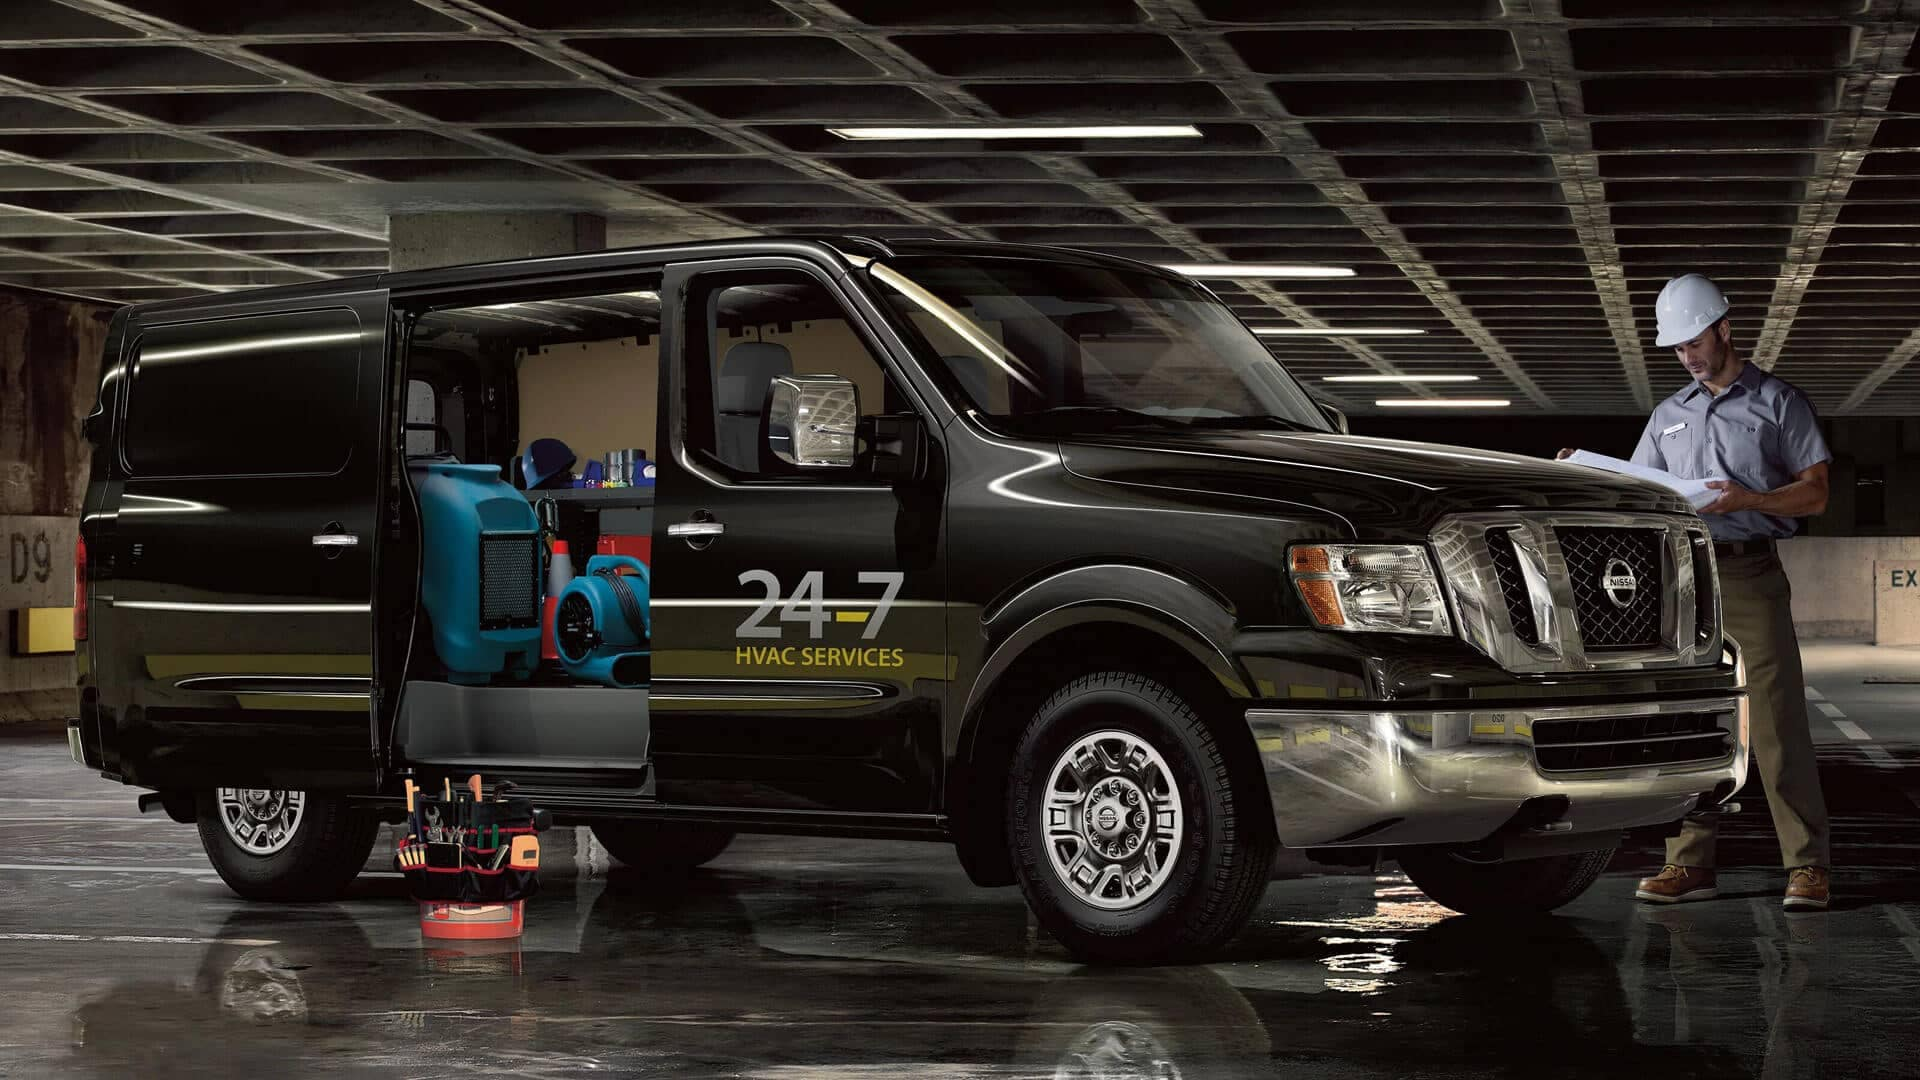 2020 Nissan NV Cargo with side door open showing tool shelves on the inside